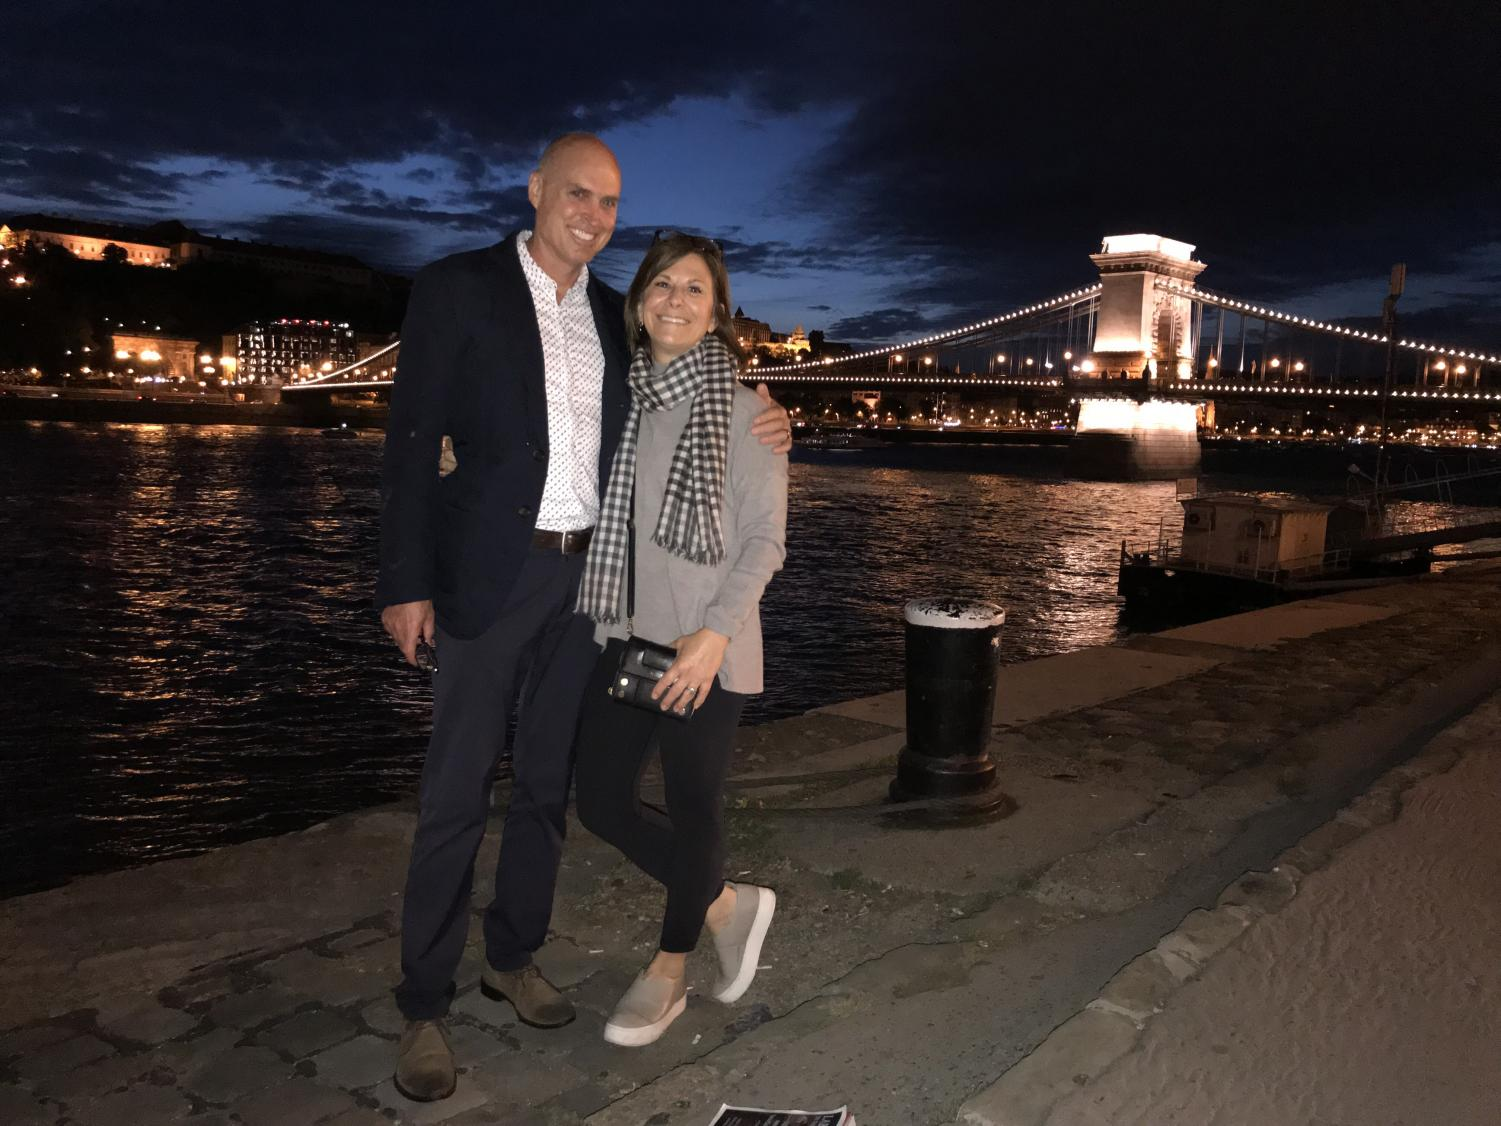 Gregory and her husband enjoy their soon-to-be home in Budapest, Hungary. The couple will reside in Budapest for the next two years before returning home to Laguna.